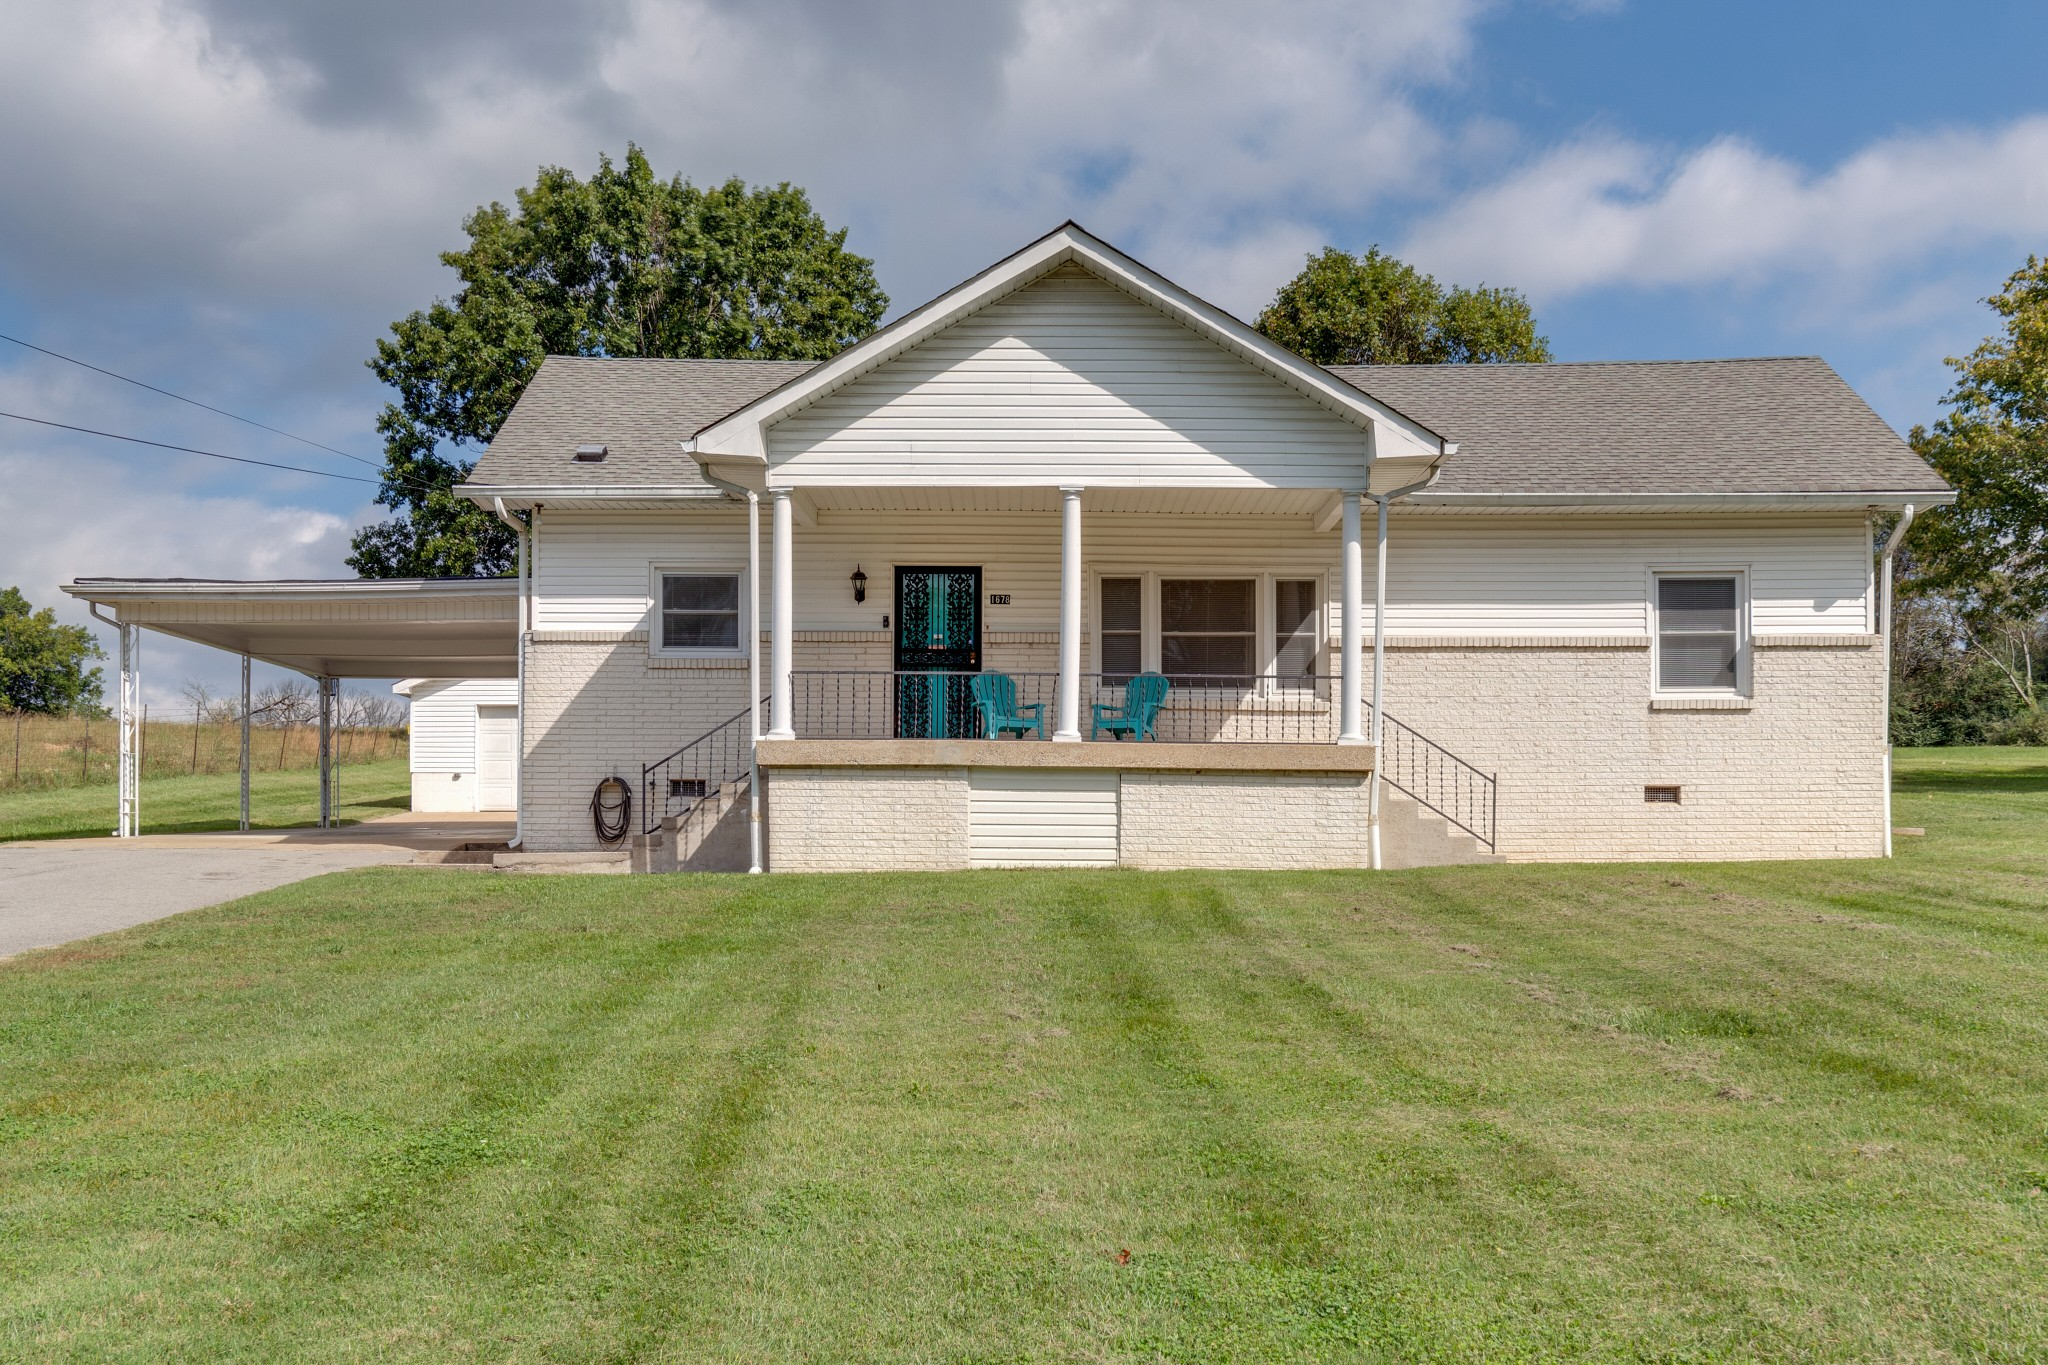 One word, LOCATION! Close proximity to Nashville Highway! Beautiful 1.23 acre lot, fenced back yard, detached garage/shop with a half bath, and large carport. This property has belonged to the same family for 50+ years and incredibly maintained! Spacious living, dining, and kitchen!